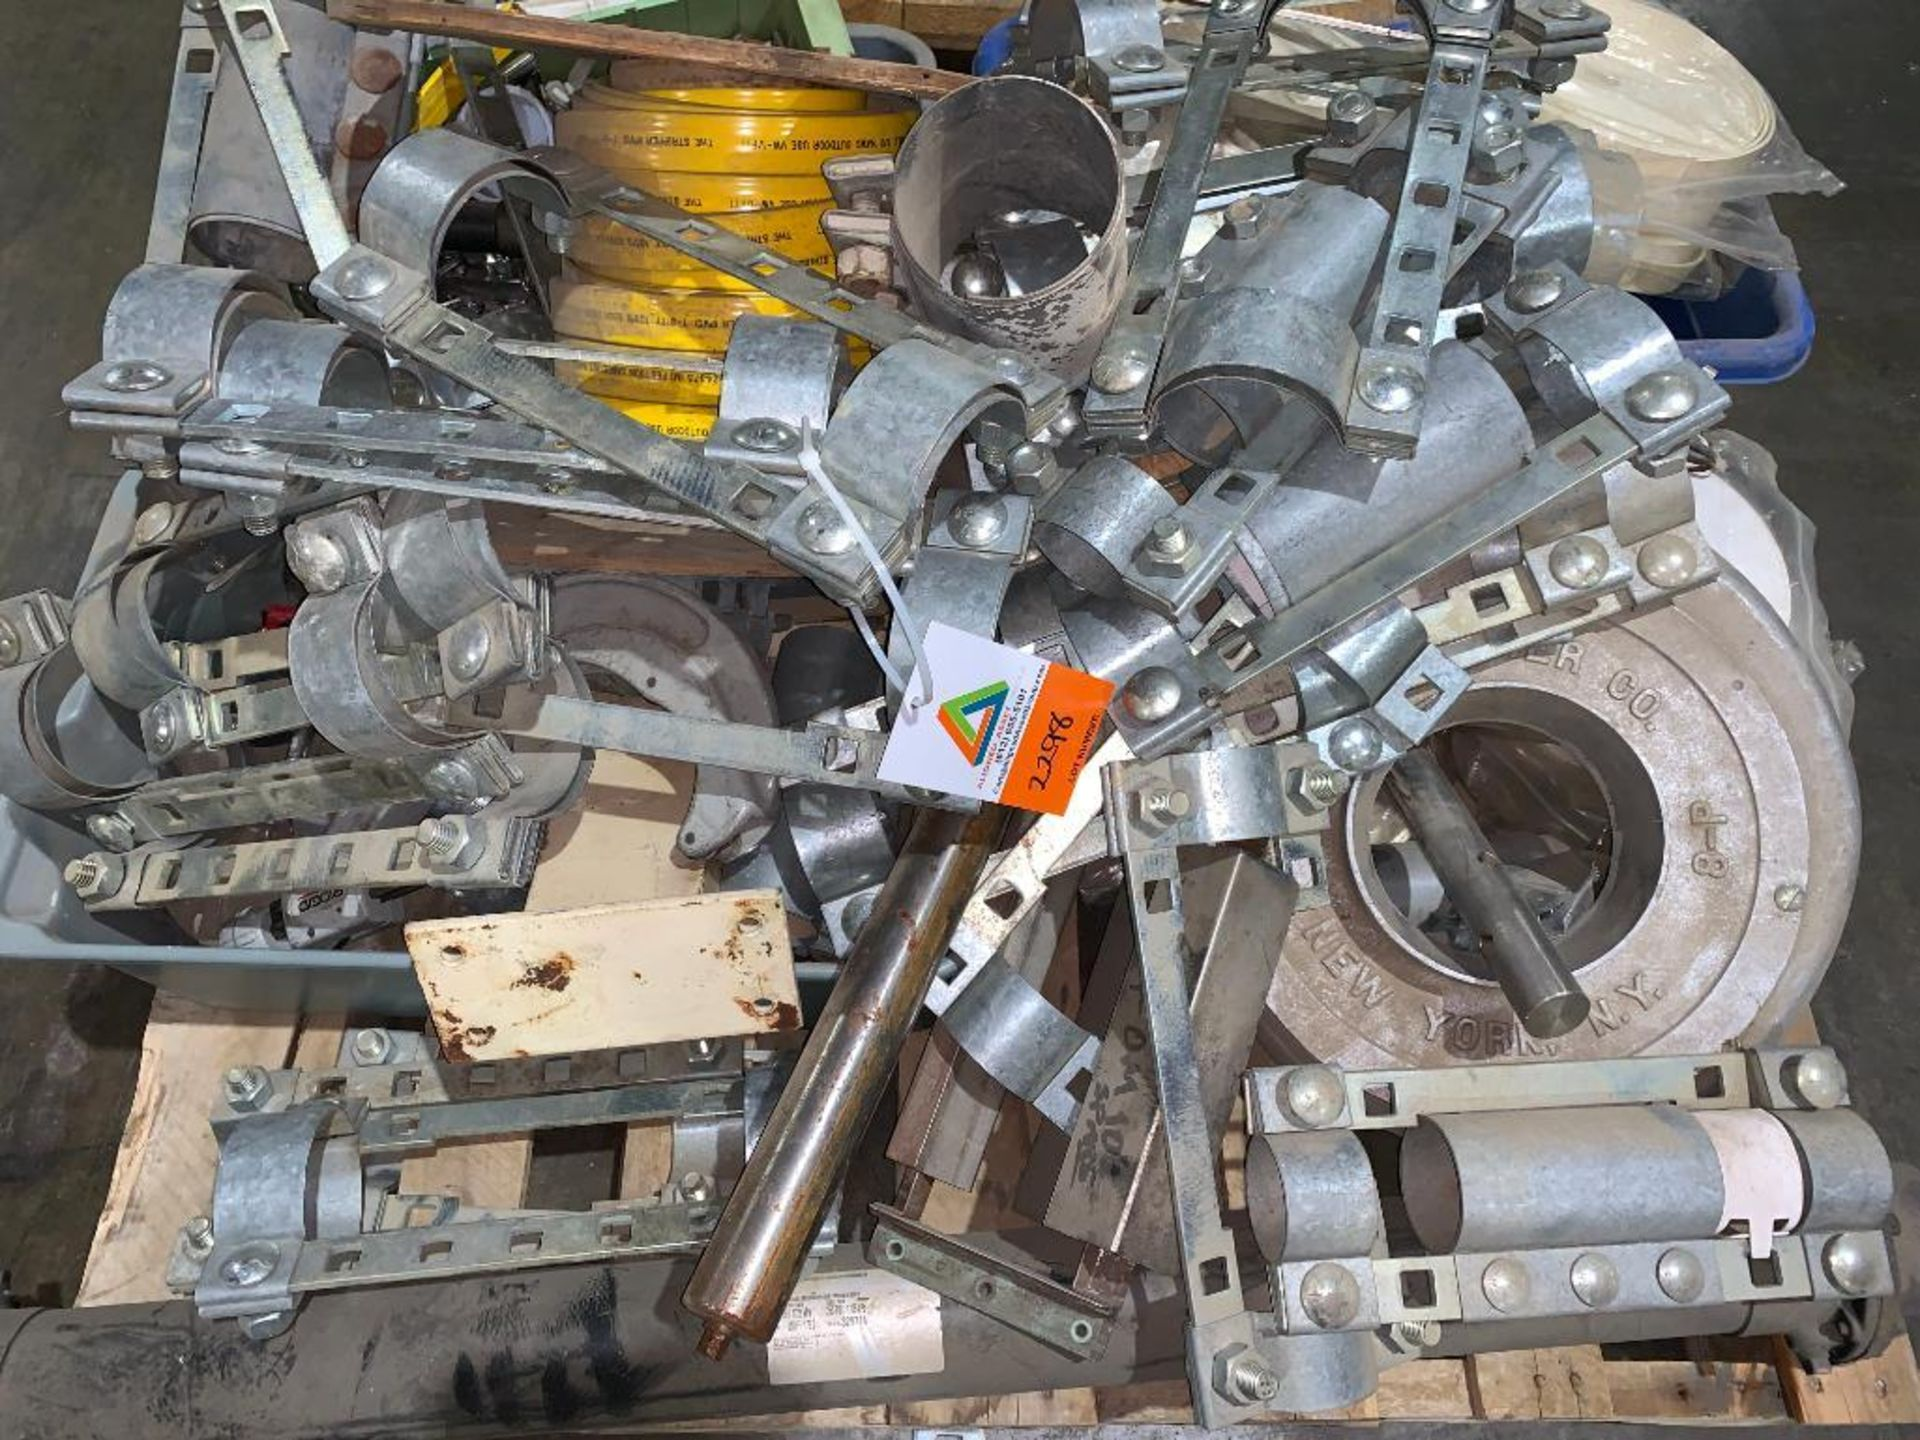 pallet of air pipe clamps - Image 2 of 6